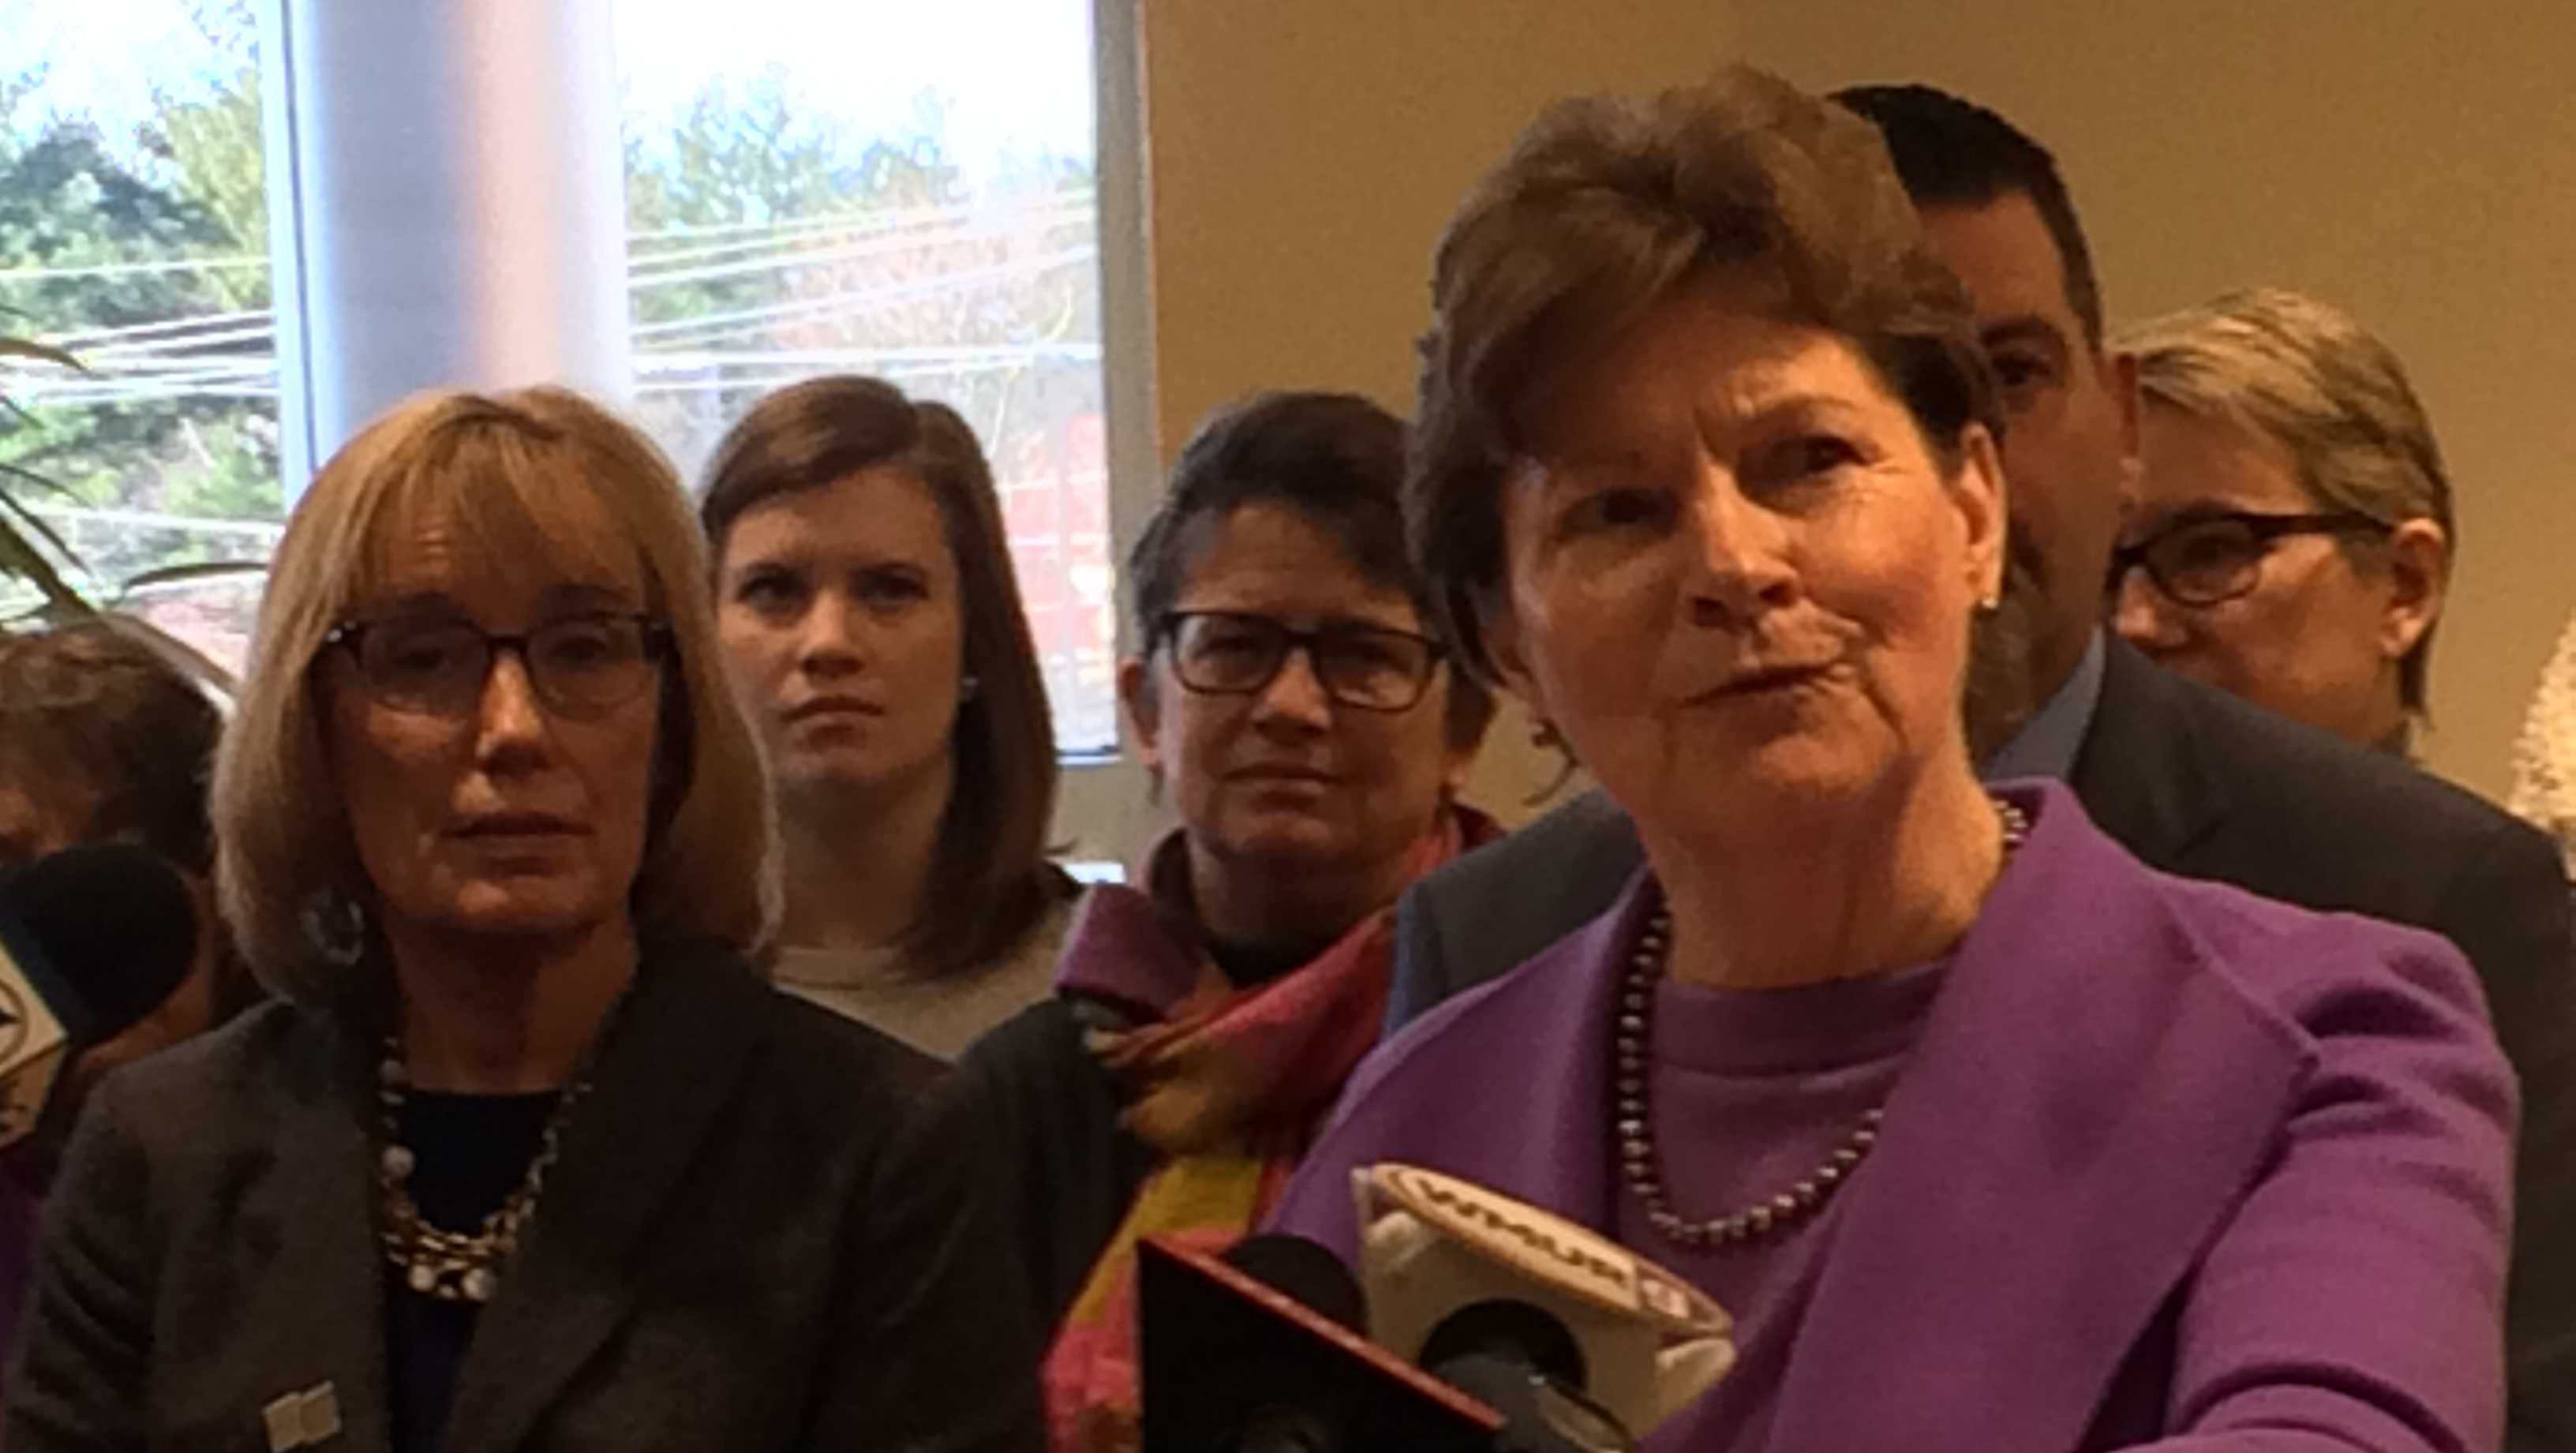 Sens. Maggie Hassan (left) and Jeanne Shaheen